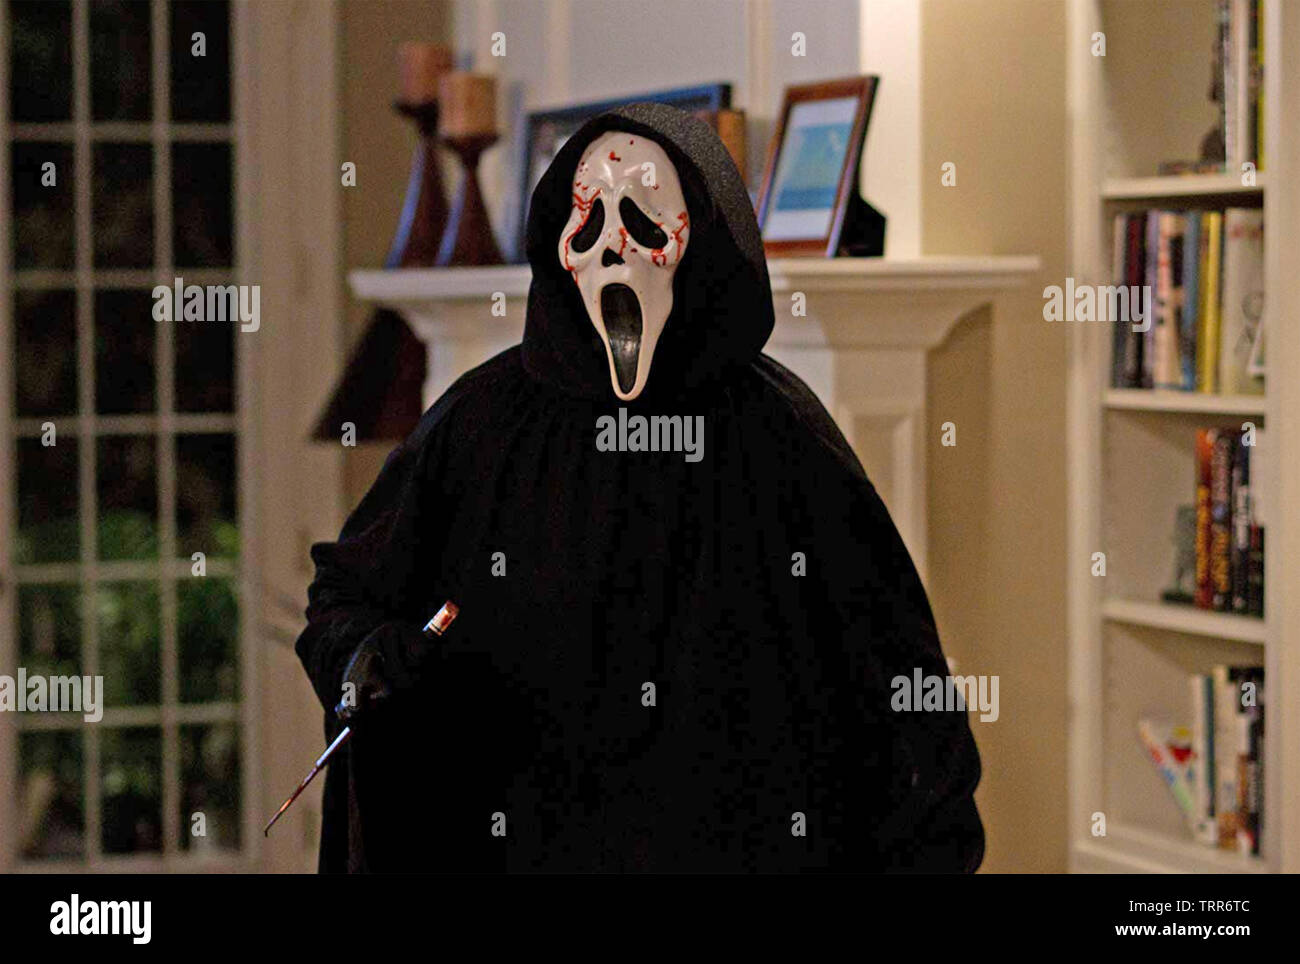 SCREAM 4 - 2011 Dimension Filme Produktion Stockbild